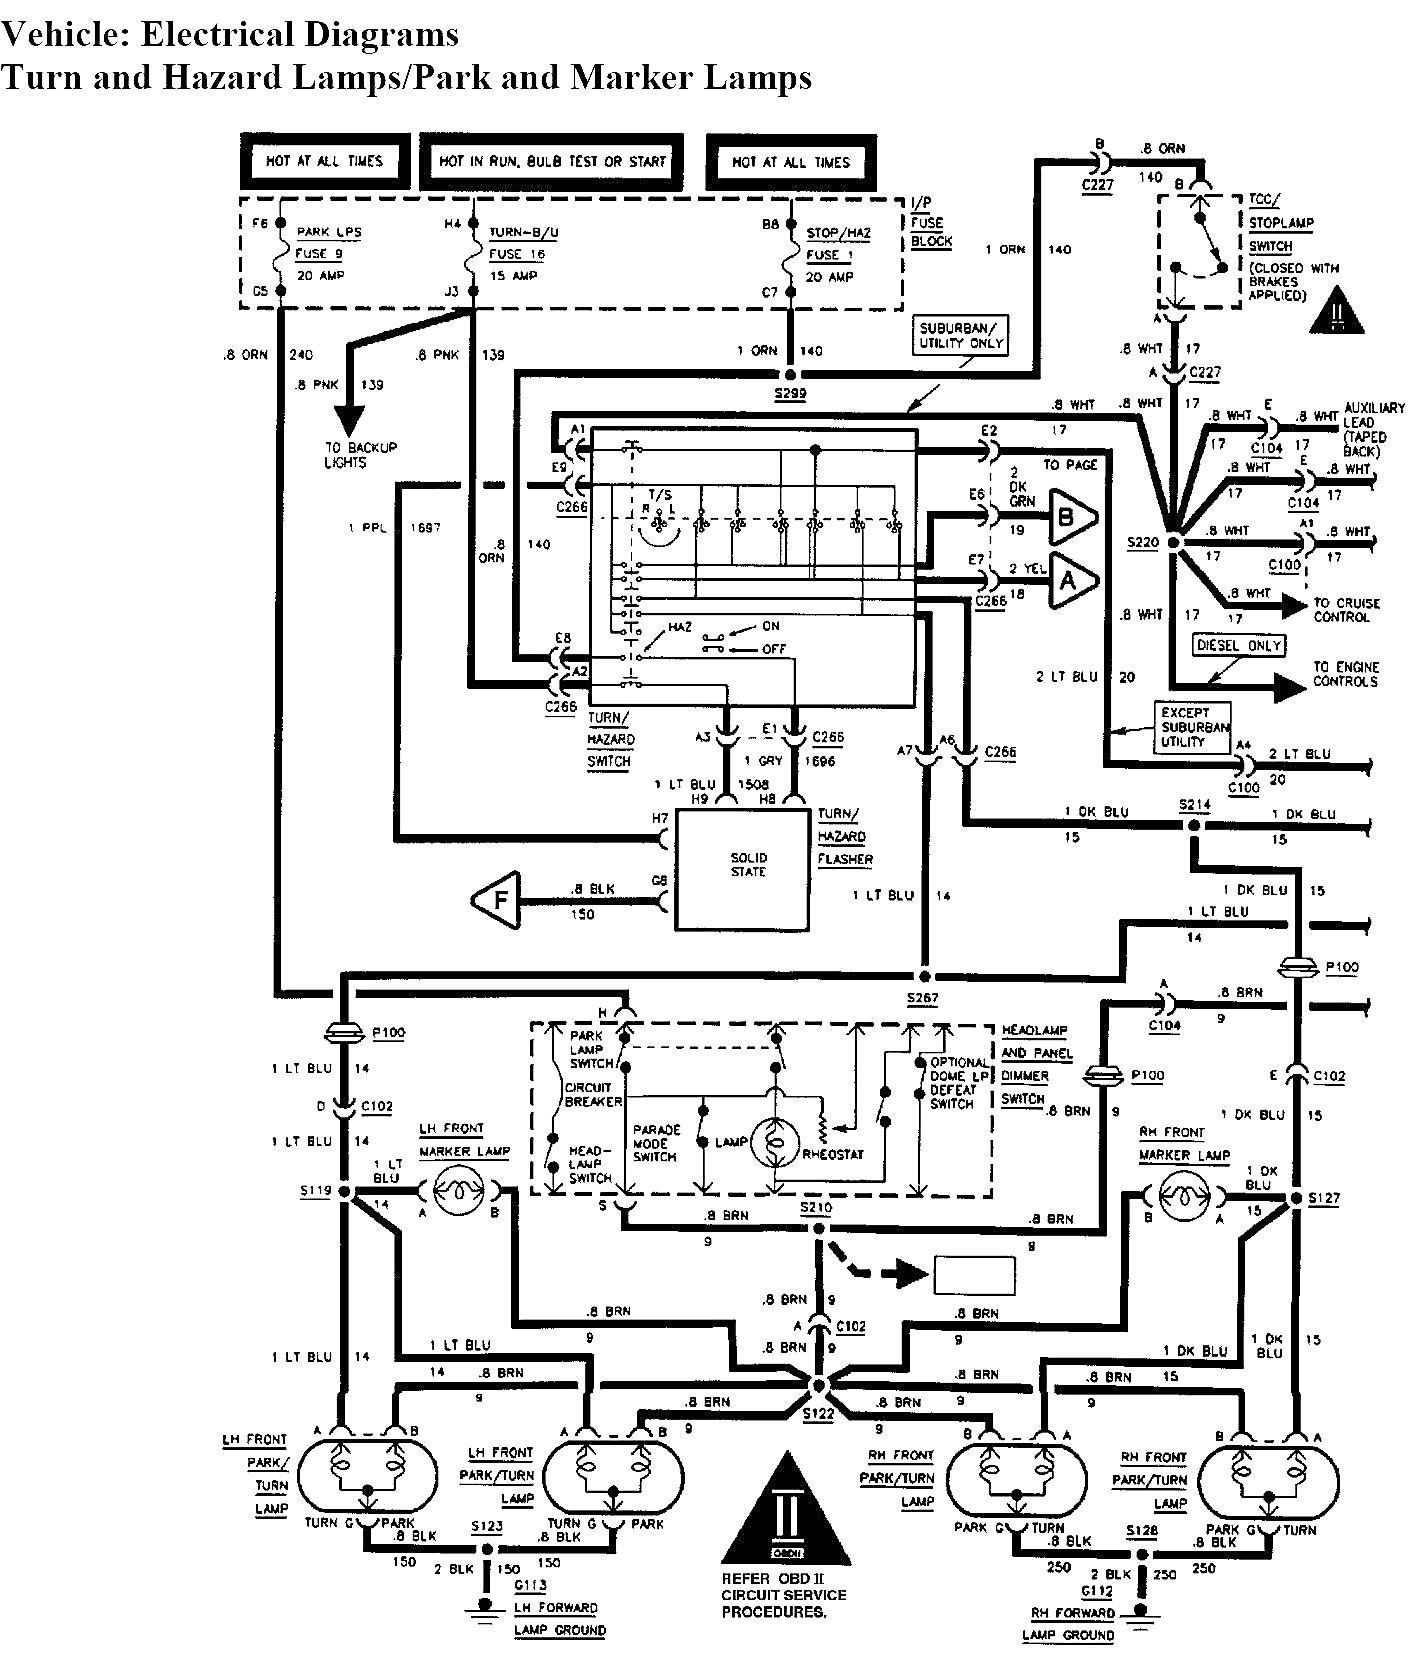 2000 gmc yukon radio wiring diagram 4 prong trailer windshield water pump